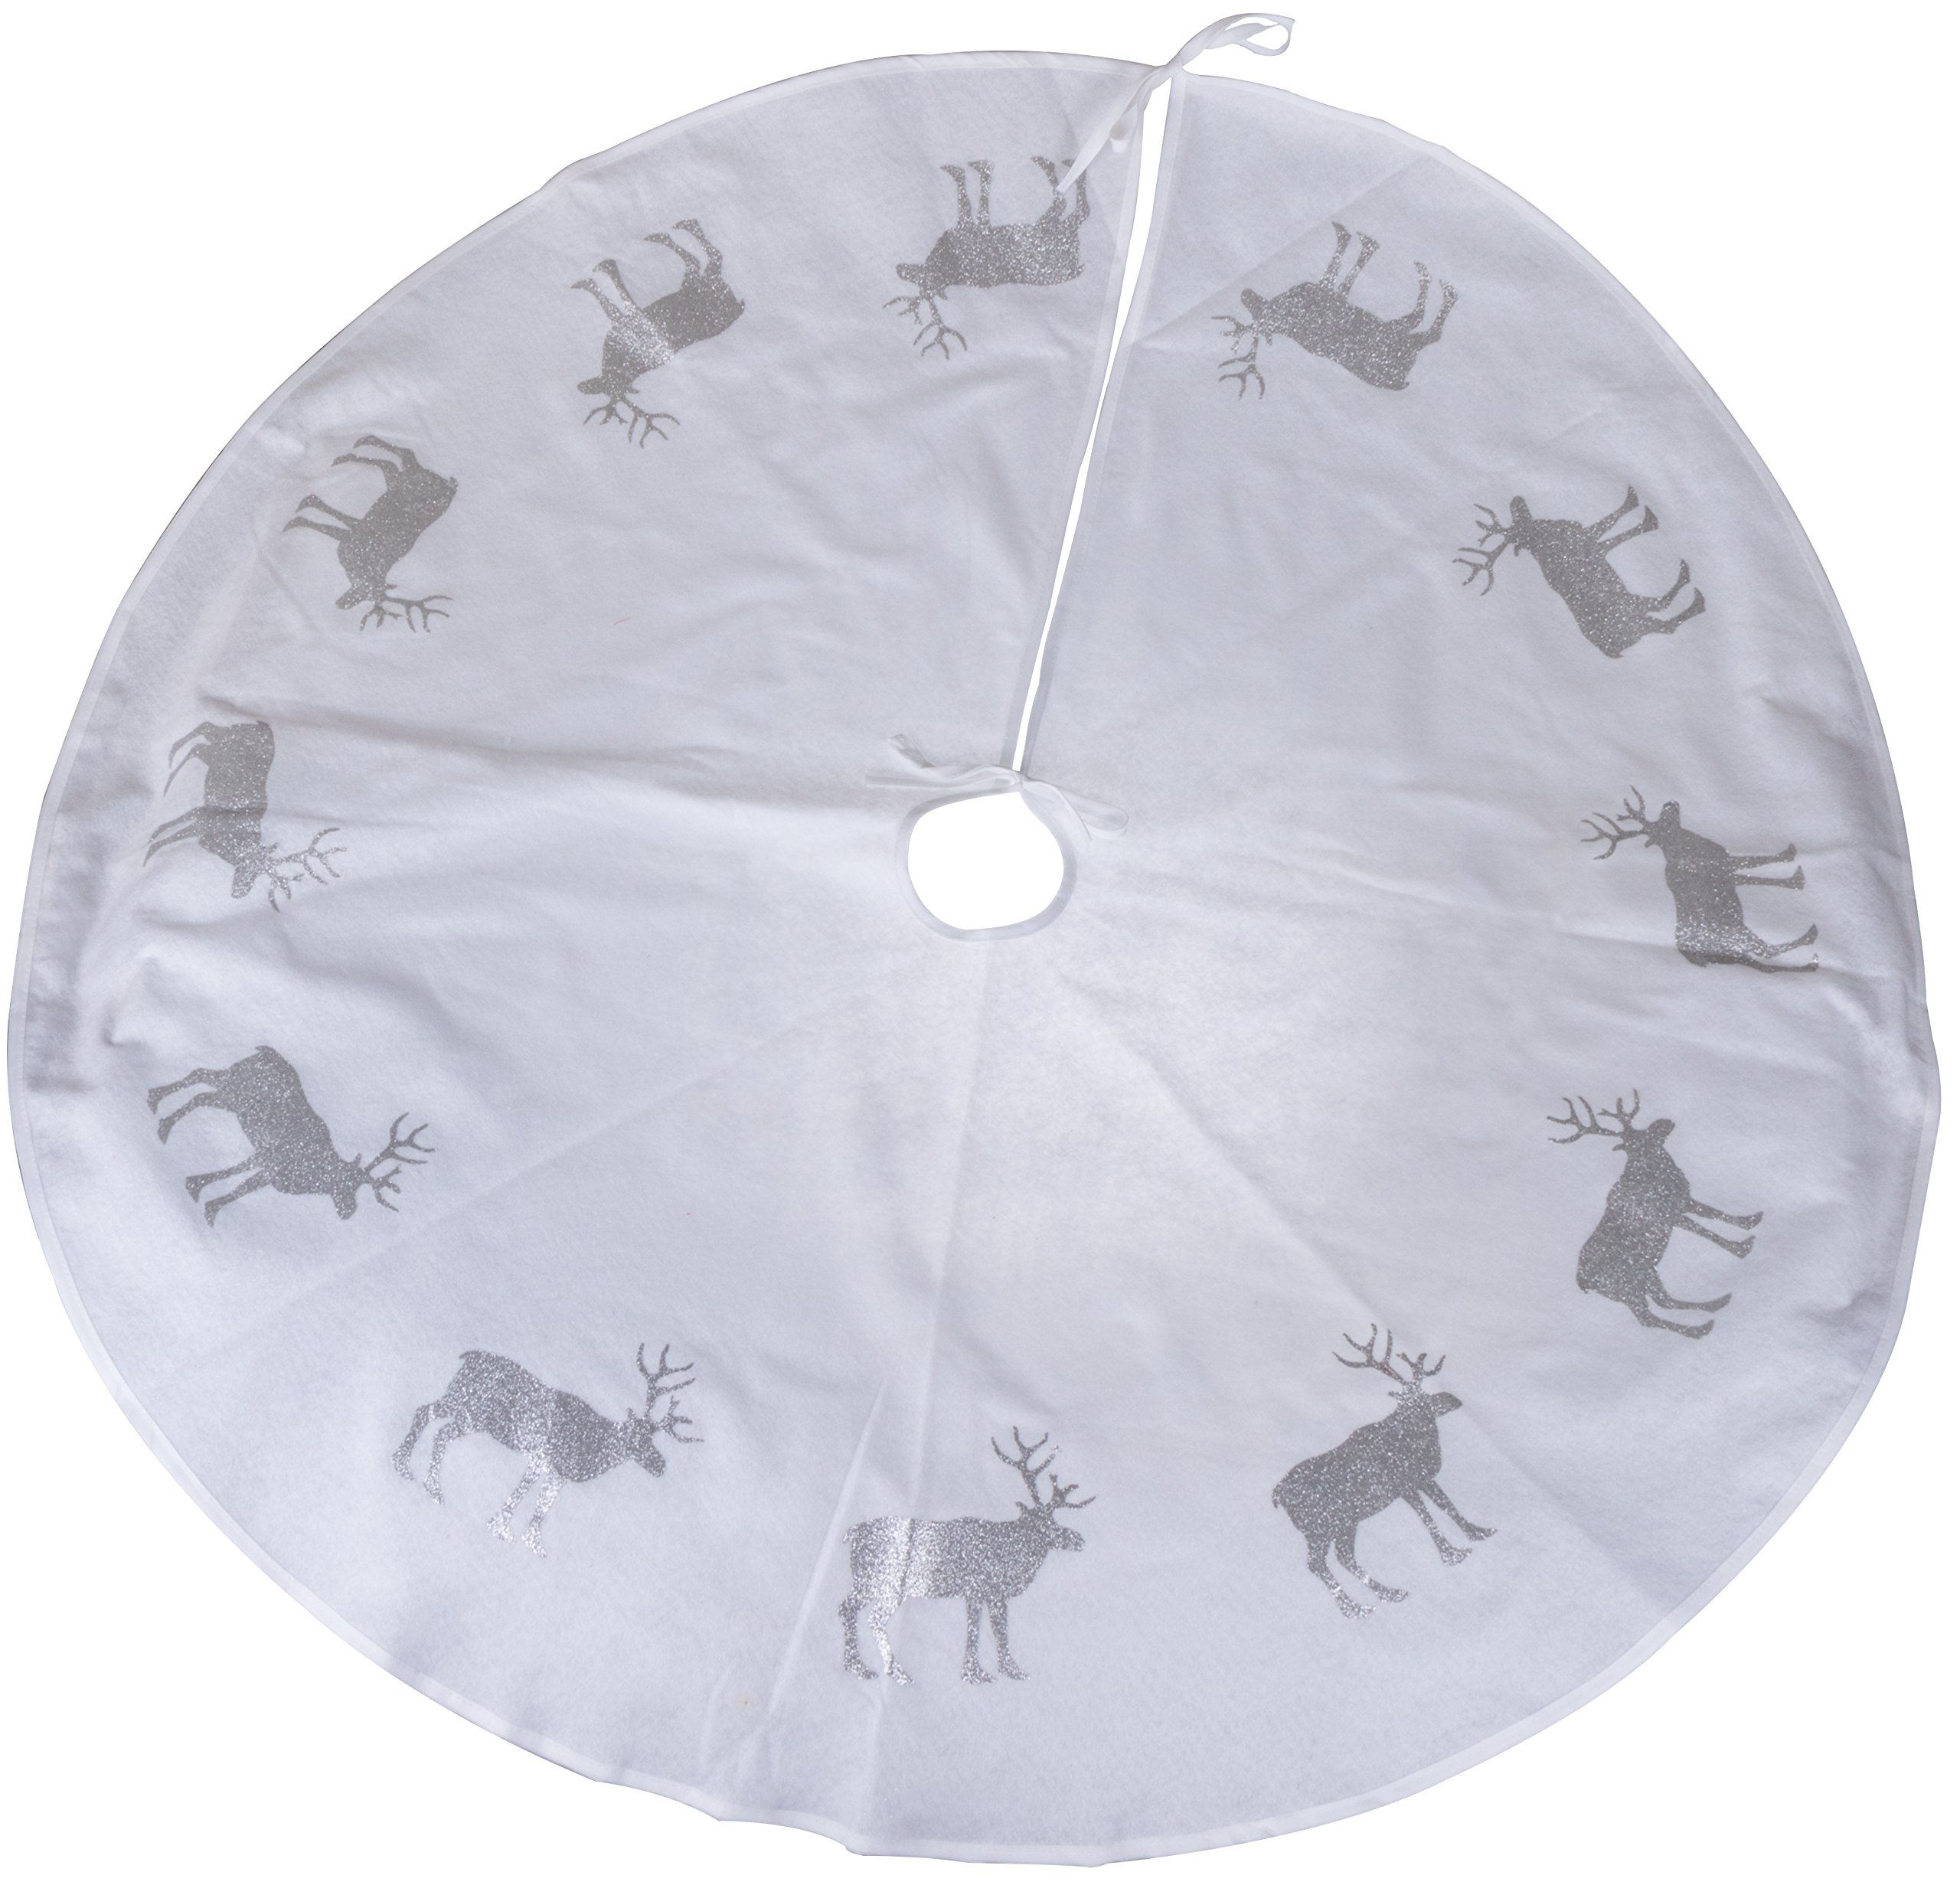 "Clever Creations White Reindeer Christmas Tree Skirt Silver Glitter Reindeer | Traditional Classic Festive Holiday Decor | Catches Falling Needles and Sap | 47"" Diameter"